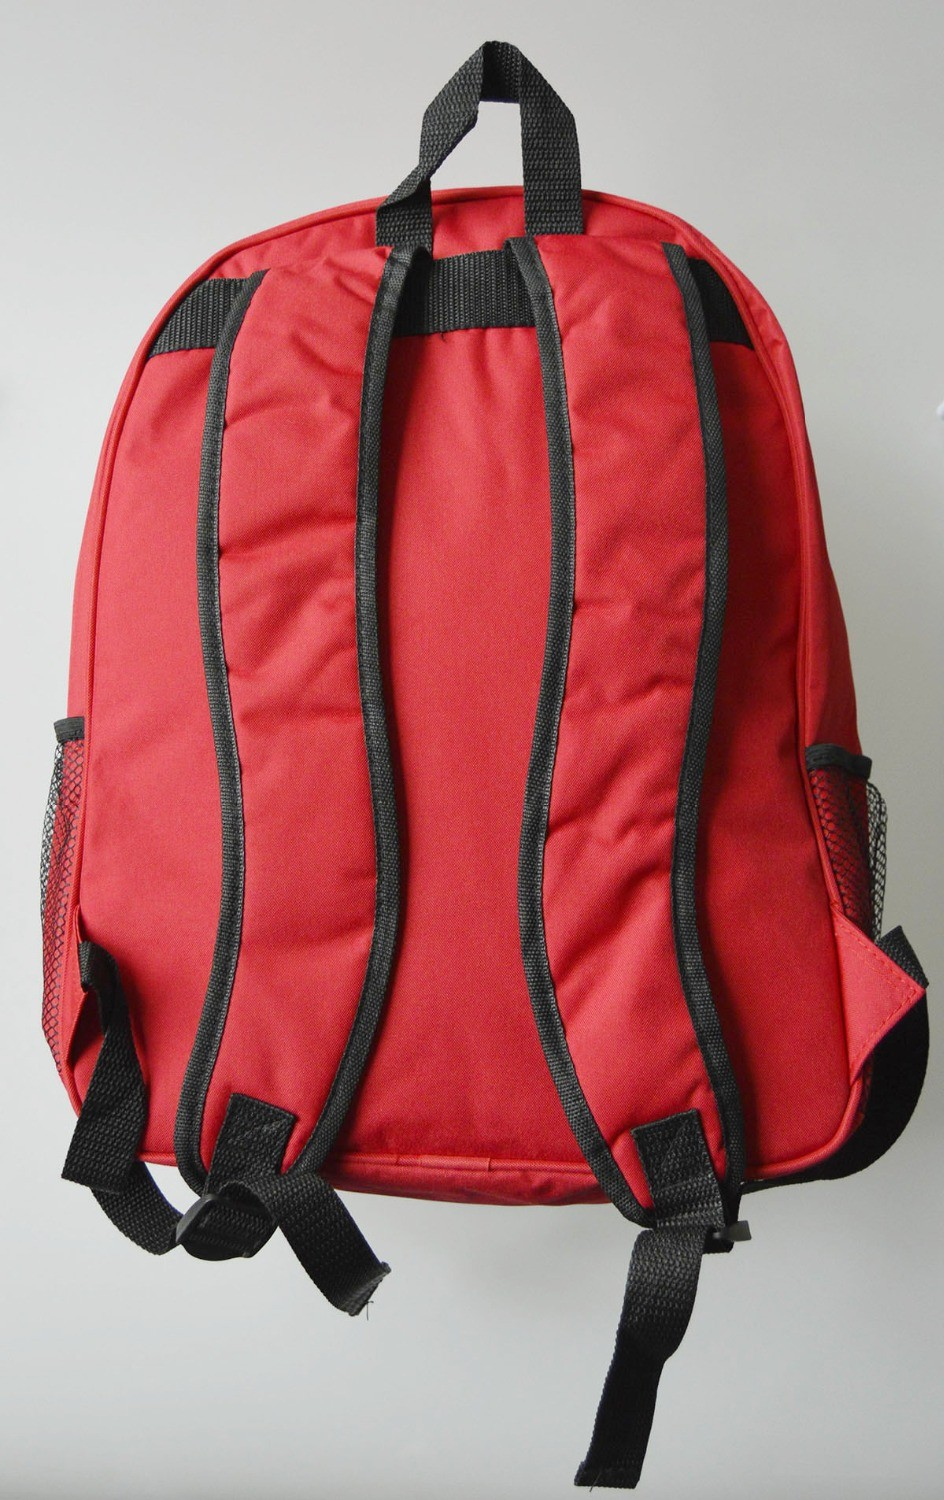 Empty-Bag-Backpack-for-First-Aid-Kit-Survival-Travel-Camping-Hiking-Medical-Emergency-Kits-Pack-Safe